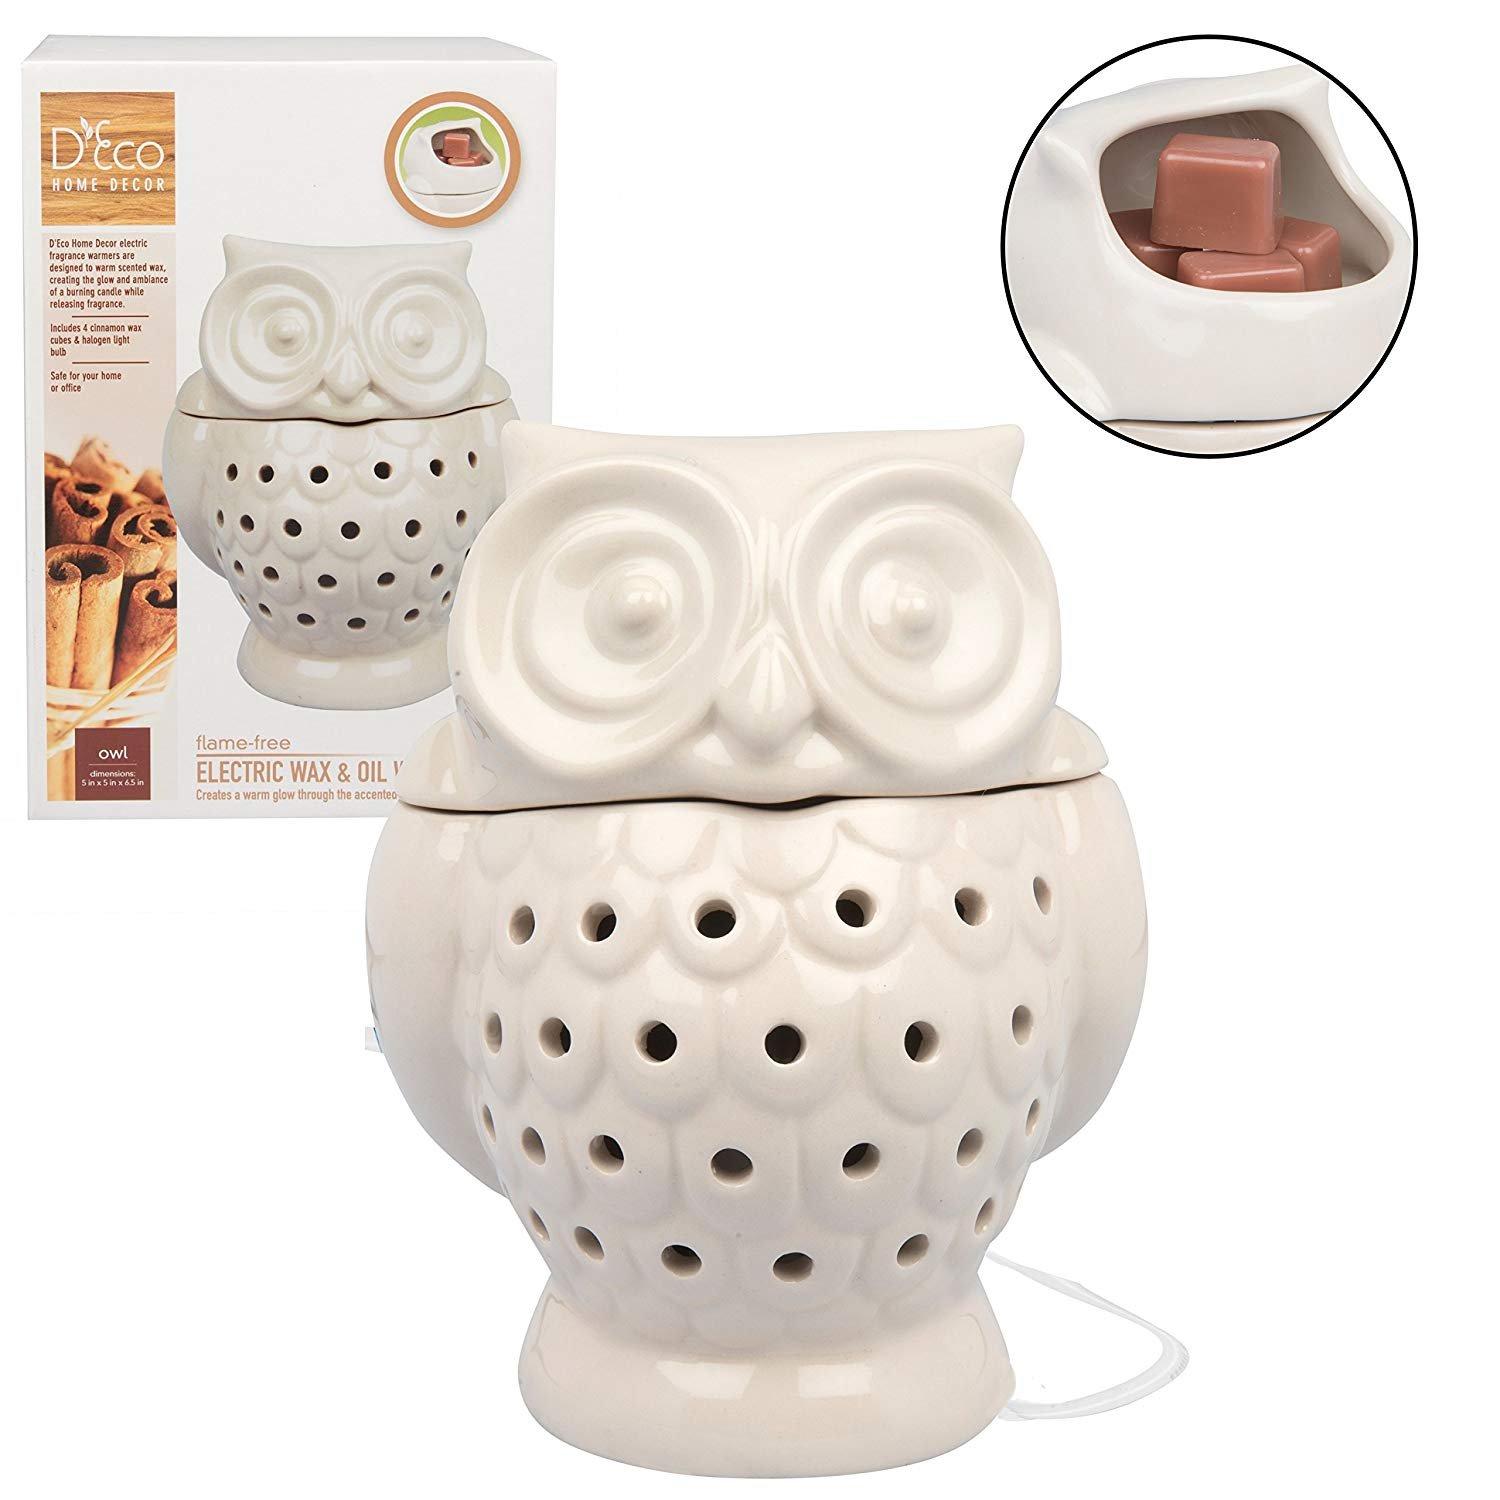 10. Deco Electric Wax Warmer: